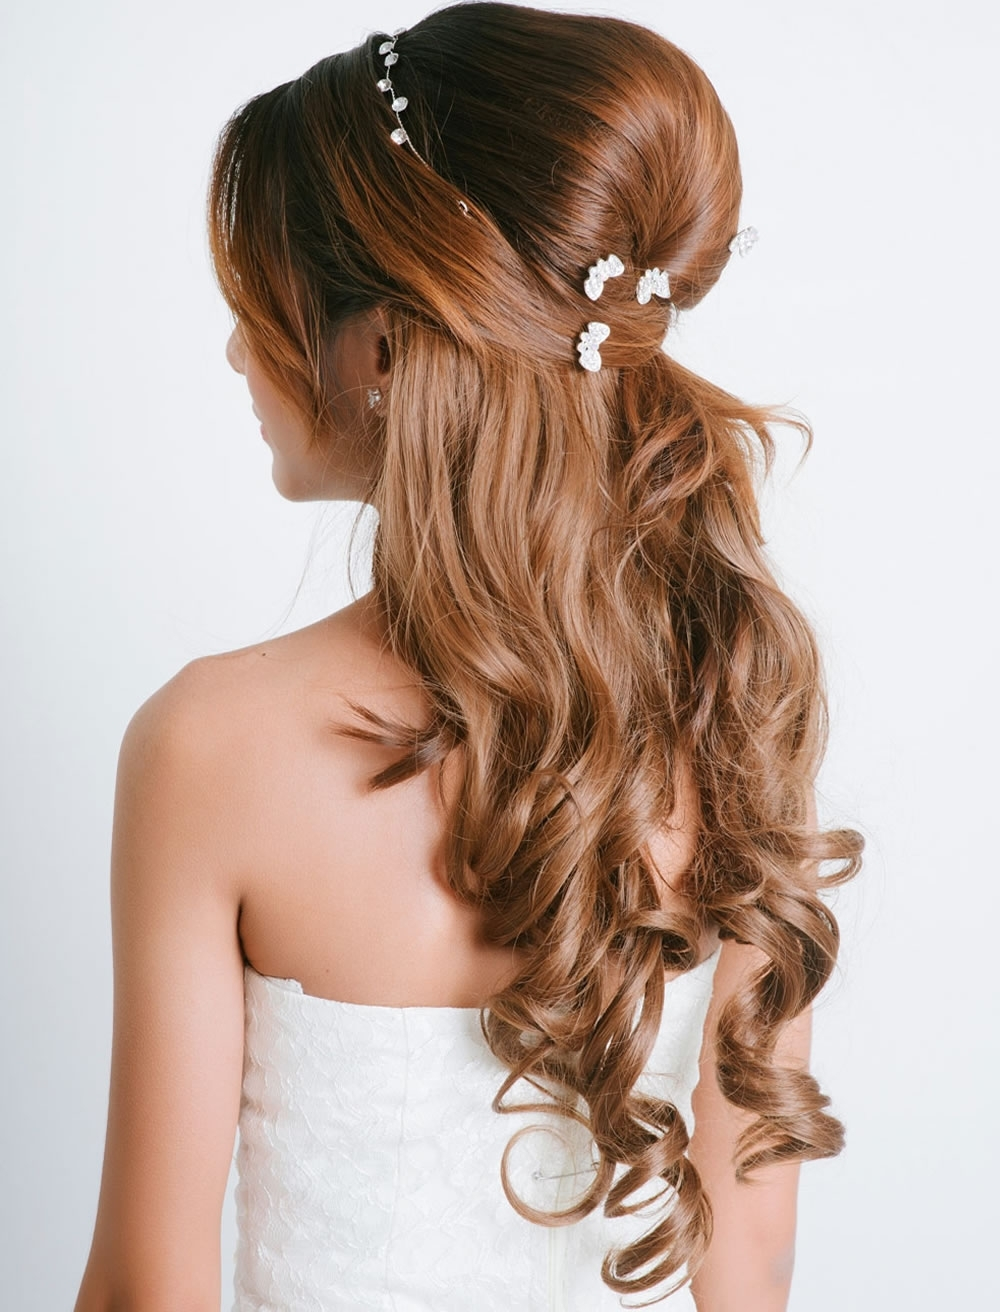 Very Stylish Wedding Hairstyles For Long Hair 2018 2019 – Page 2 Intended For Well Known Wedding Hairstyles For Long Brown Hair (View 14 of 15)